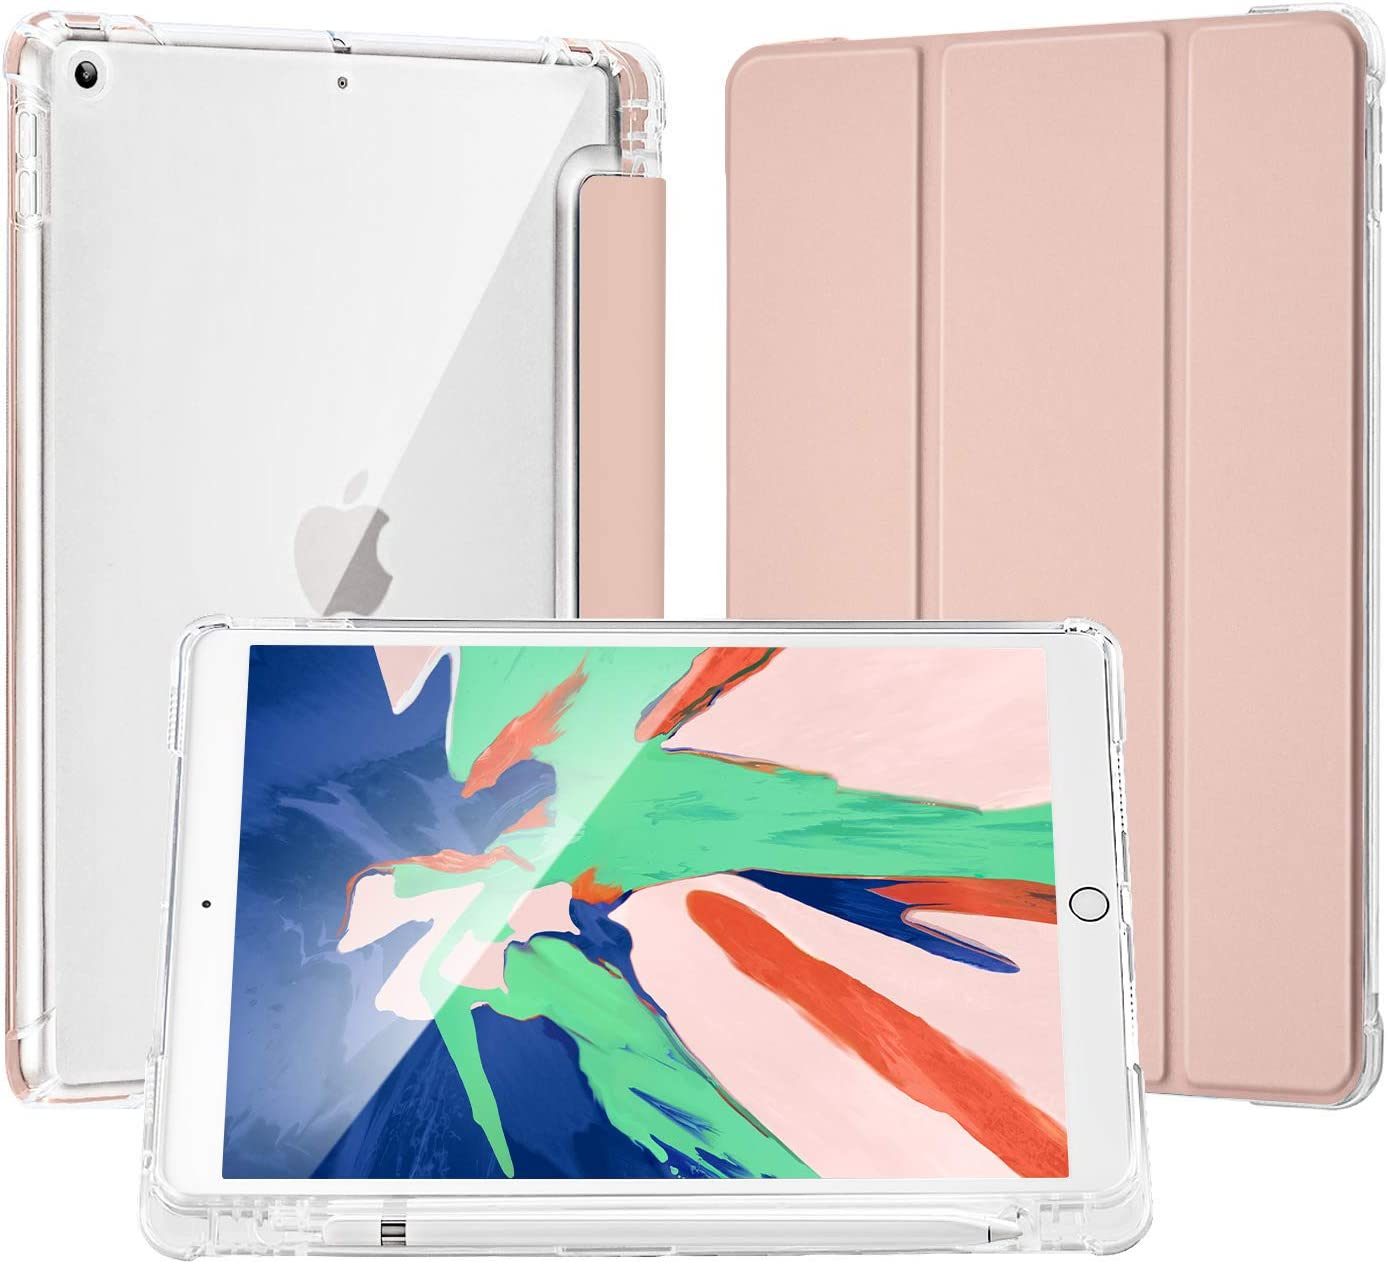 LovRug Compatible for iPad 8/7th Generation Case(2020/2019), iPad 10.2 Case with Apple Pencil Holder,Light Weight Soft TPU Translucent Frosted Back Smart Cover Cases [Full Protective] (Rose Gold)